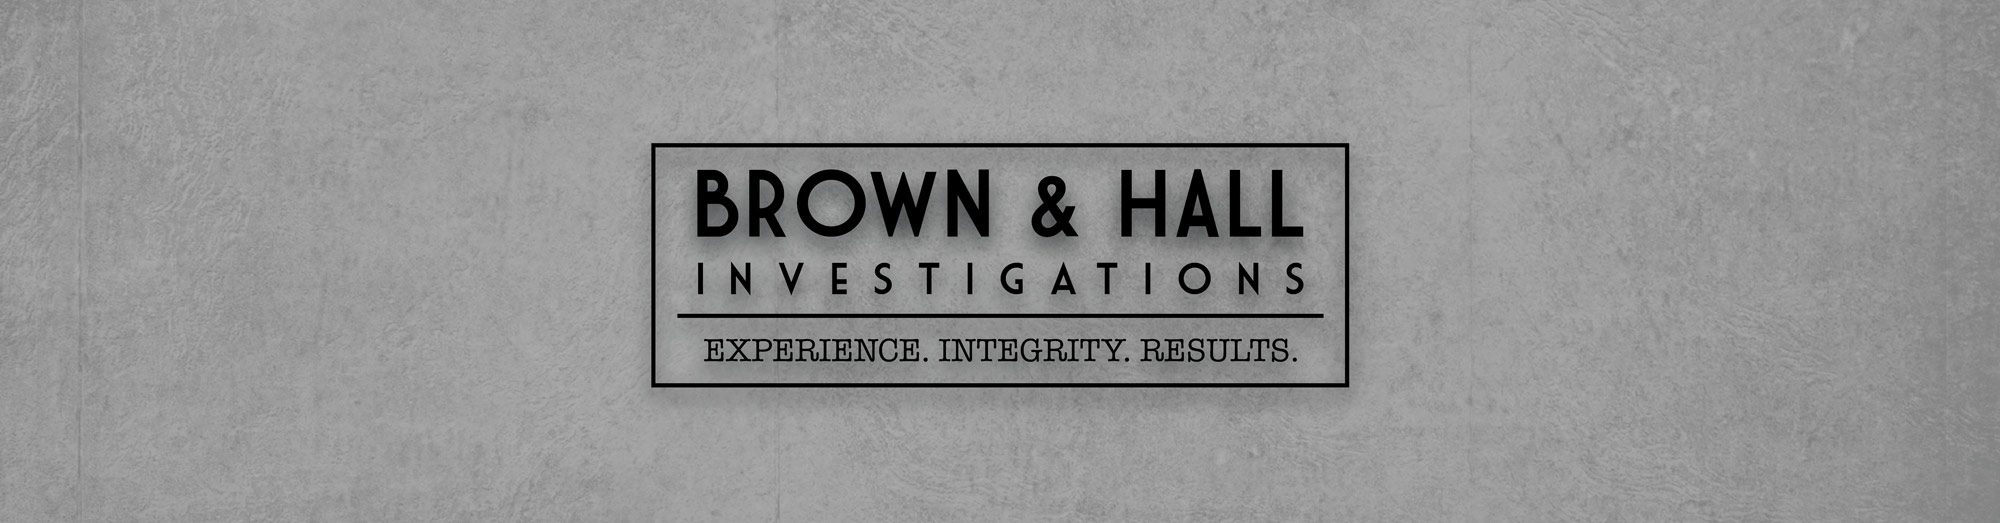 Brown-&-Hall-Homepage-Graphic-blank-3